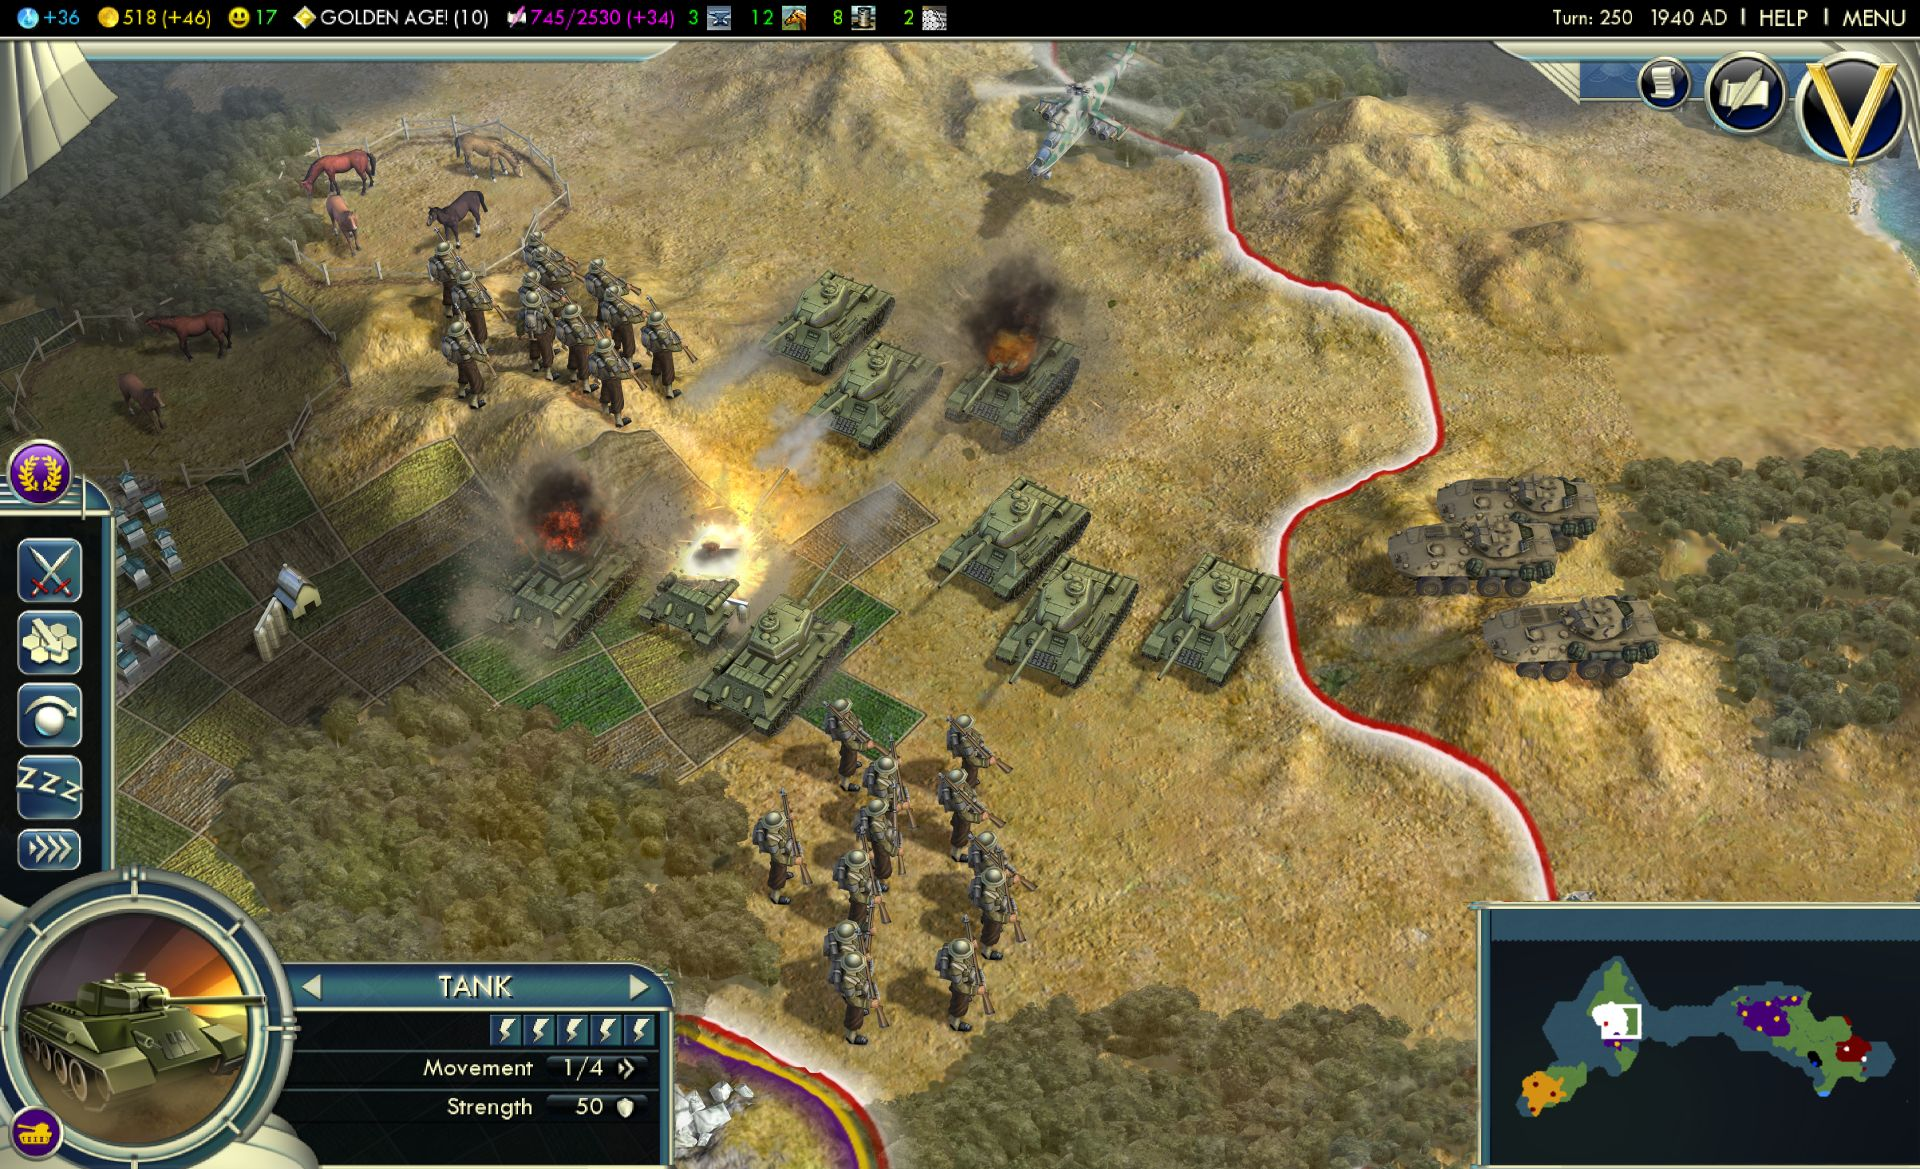 where can i download civilization 5 for free